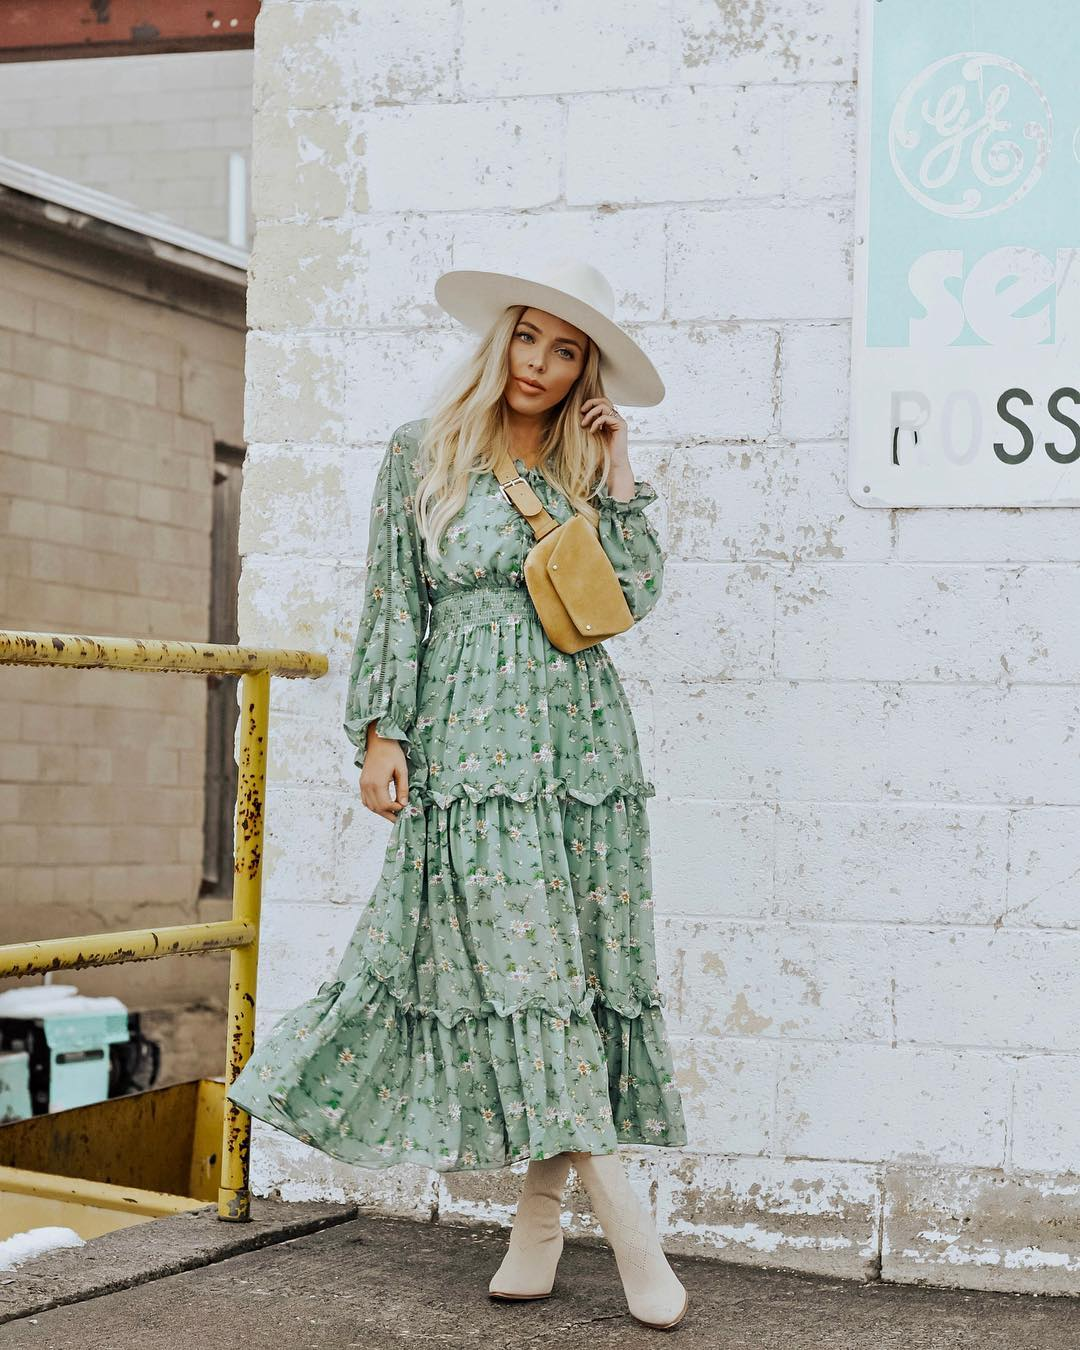 2019 Fashion Trends Work: Instantly Update Your Closet With Our Spring 2019 Fashion